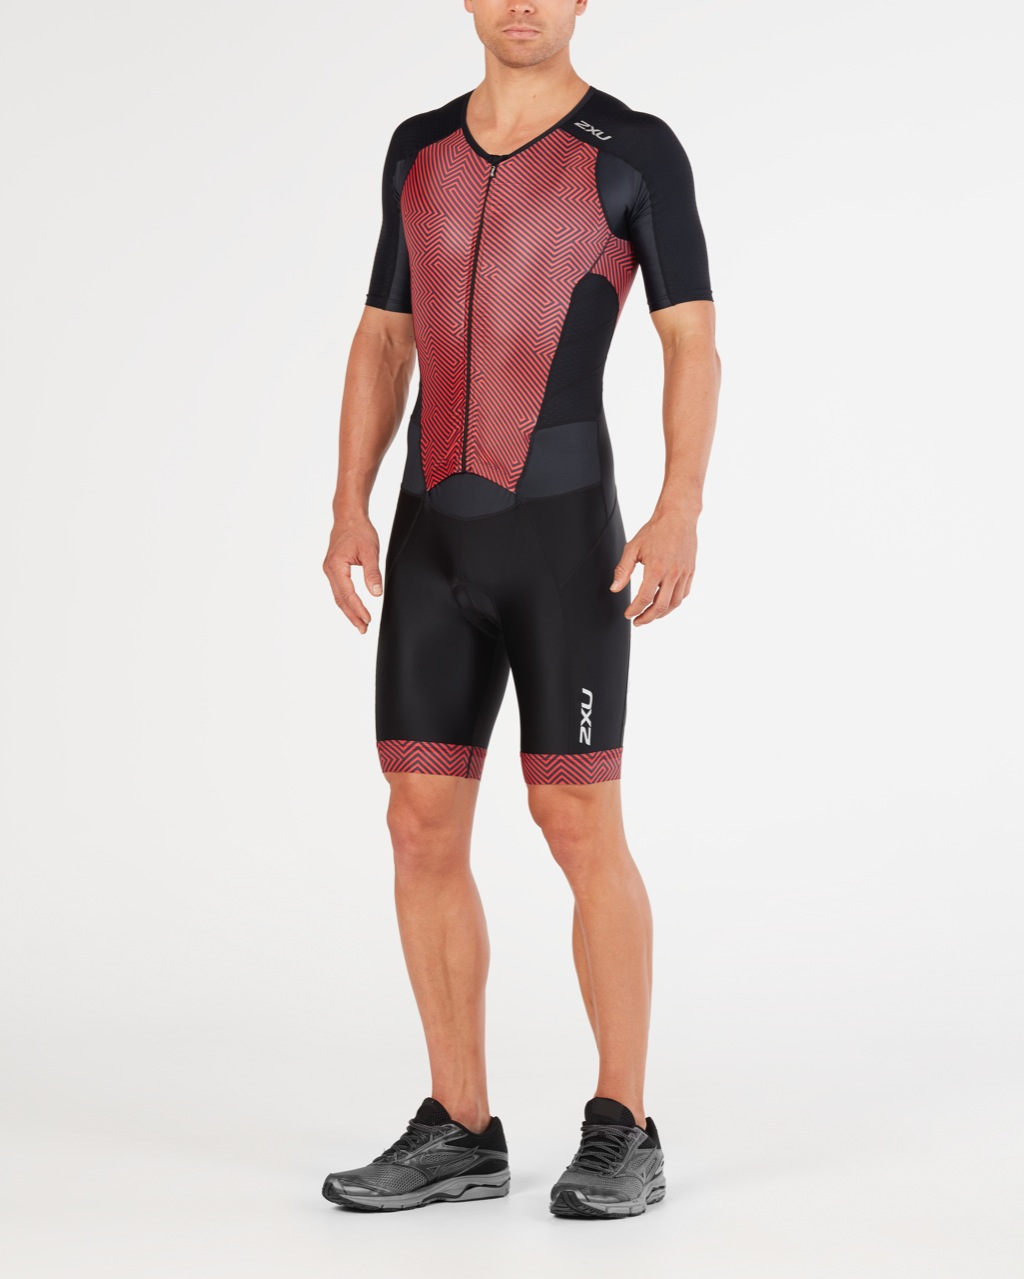 BODY 2XU MEN'S PERFORM FULL ZIP SLEEVED TRISUIT MT4847d black red.jpg